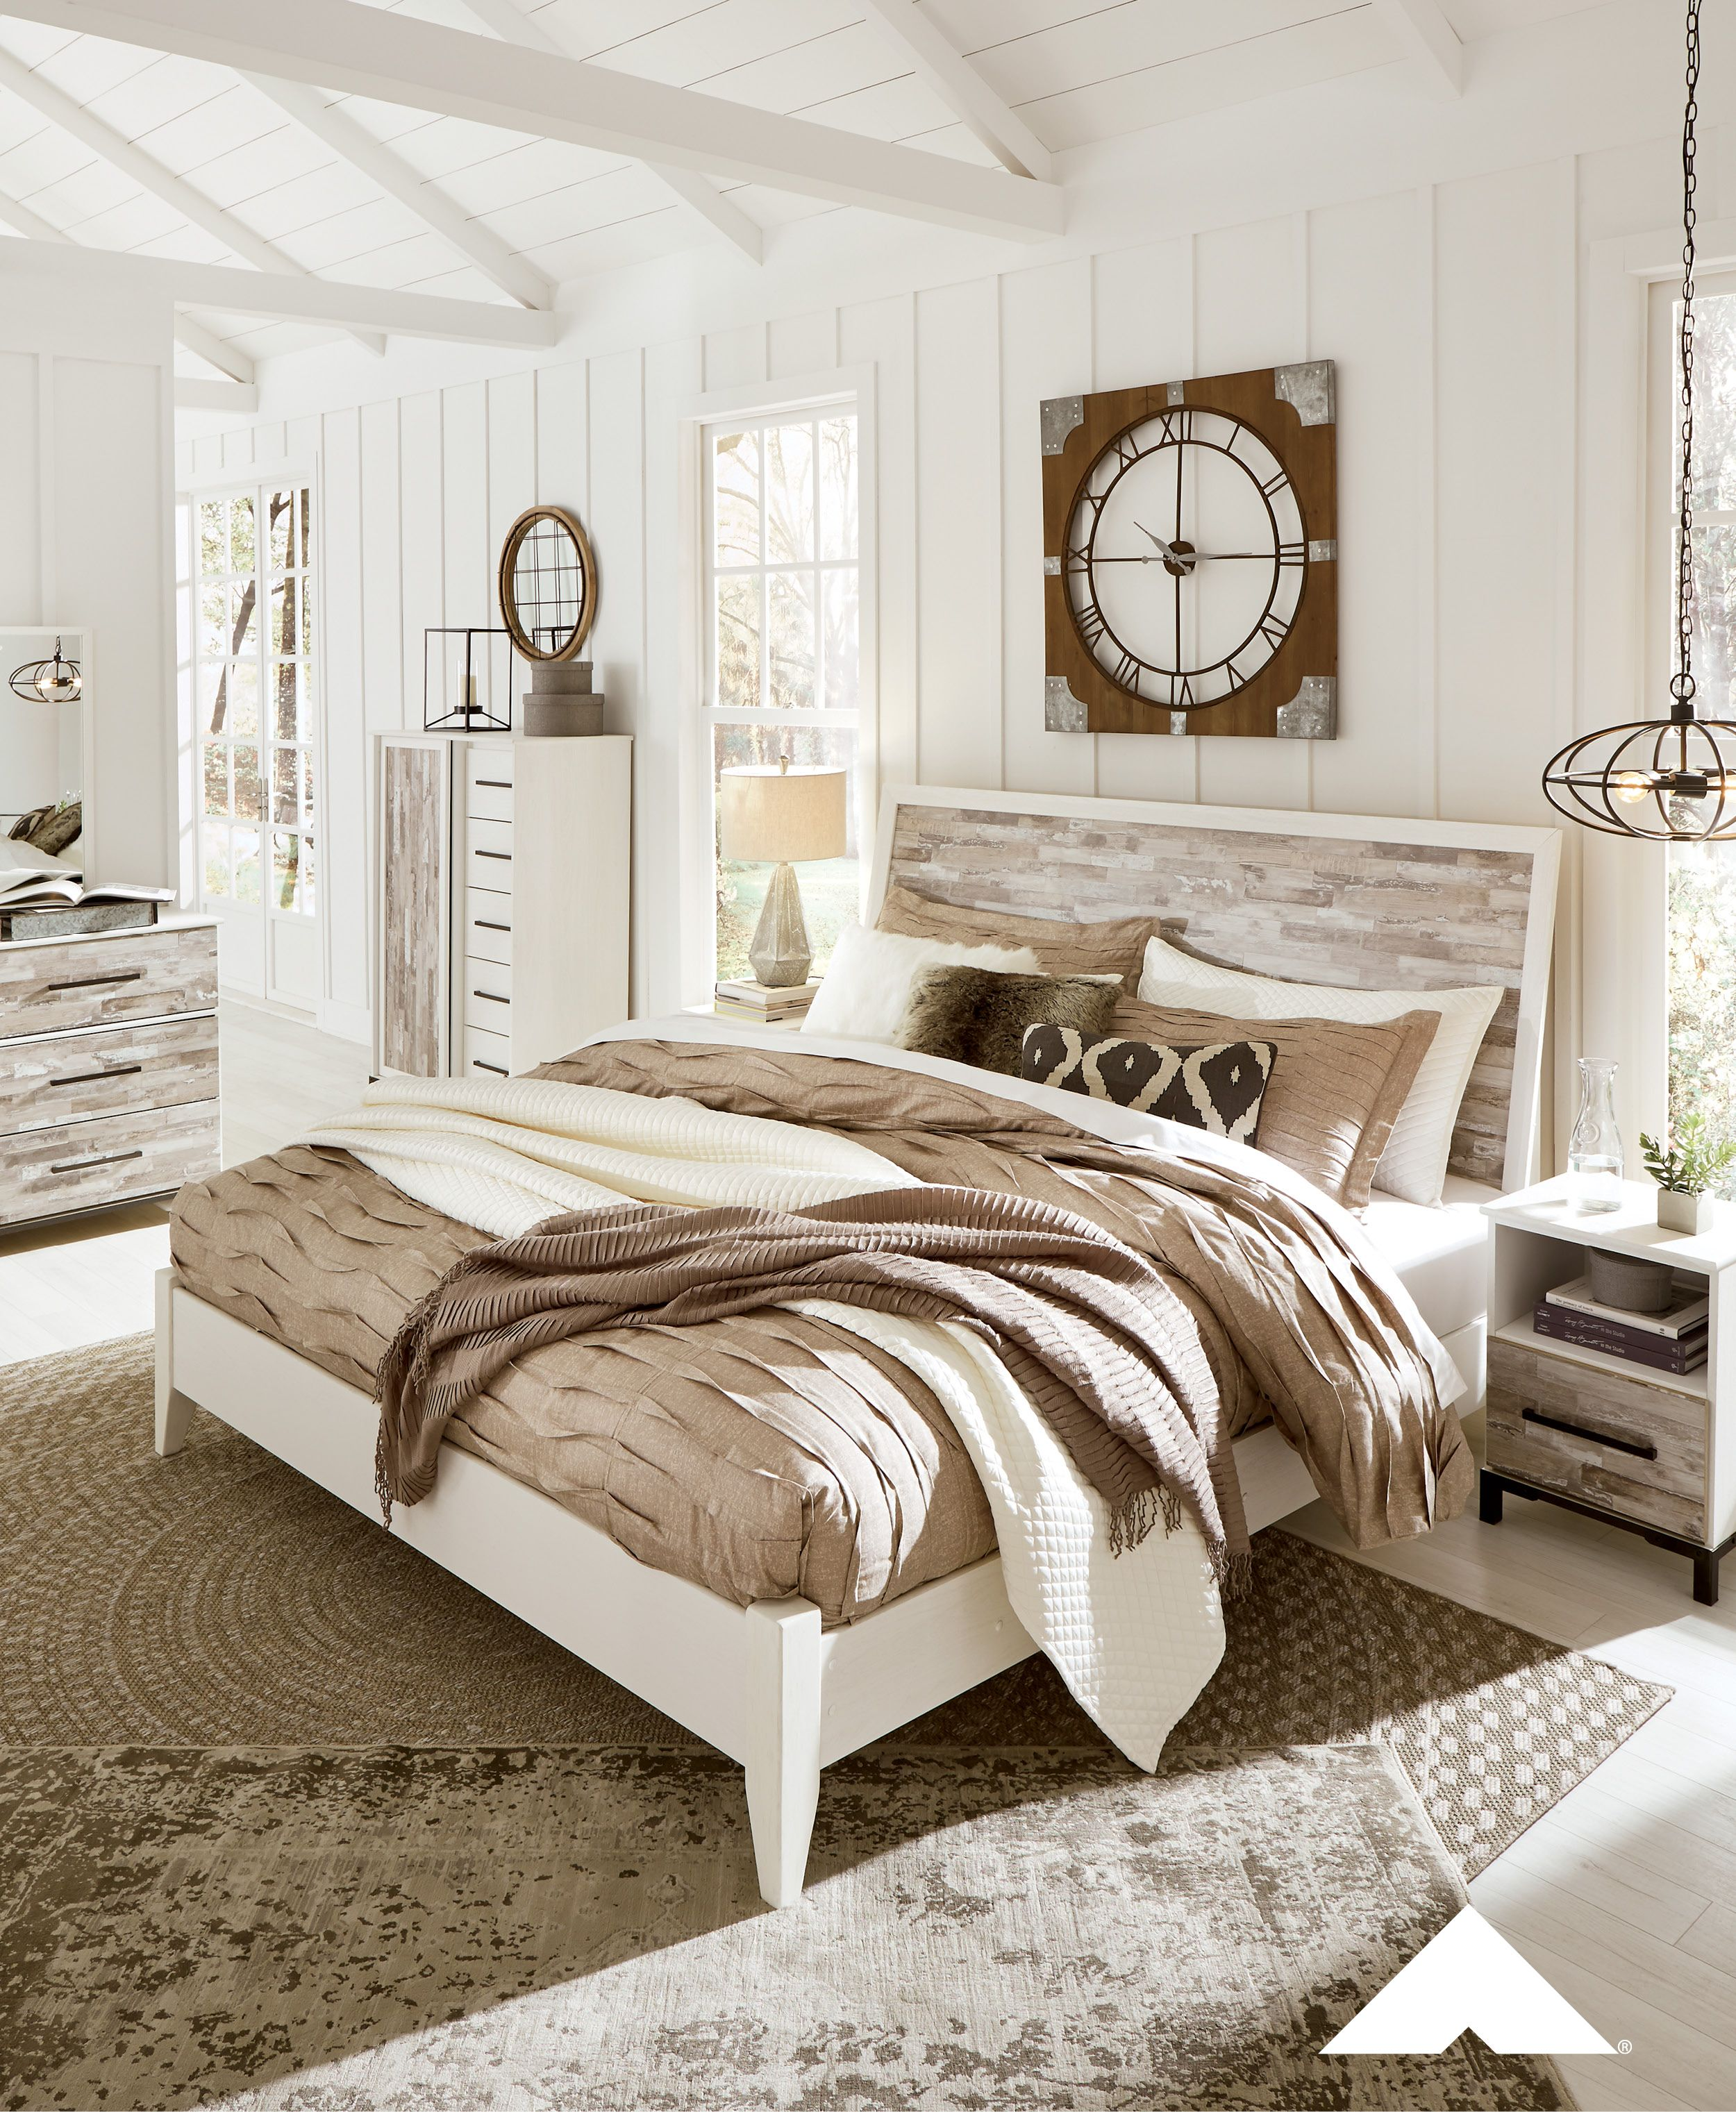 Evanni Rustic Master Bedroom By Ashley Furniture Ashleyfurniture Homedecor Bedrooals Bedroomideas Bedroominspiration